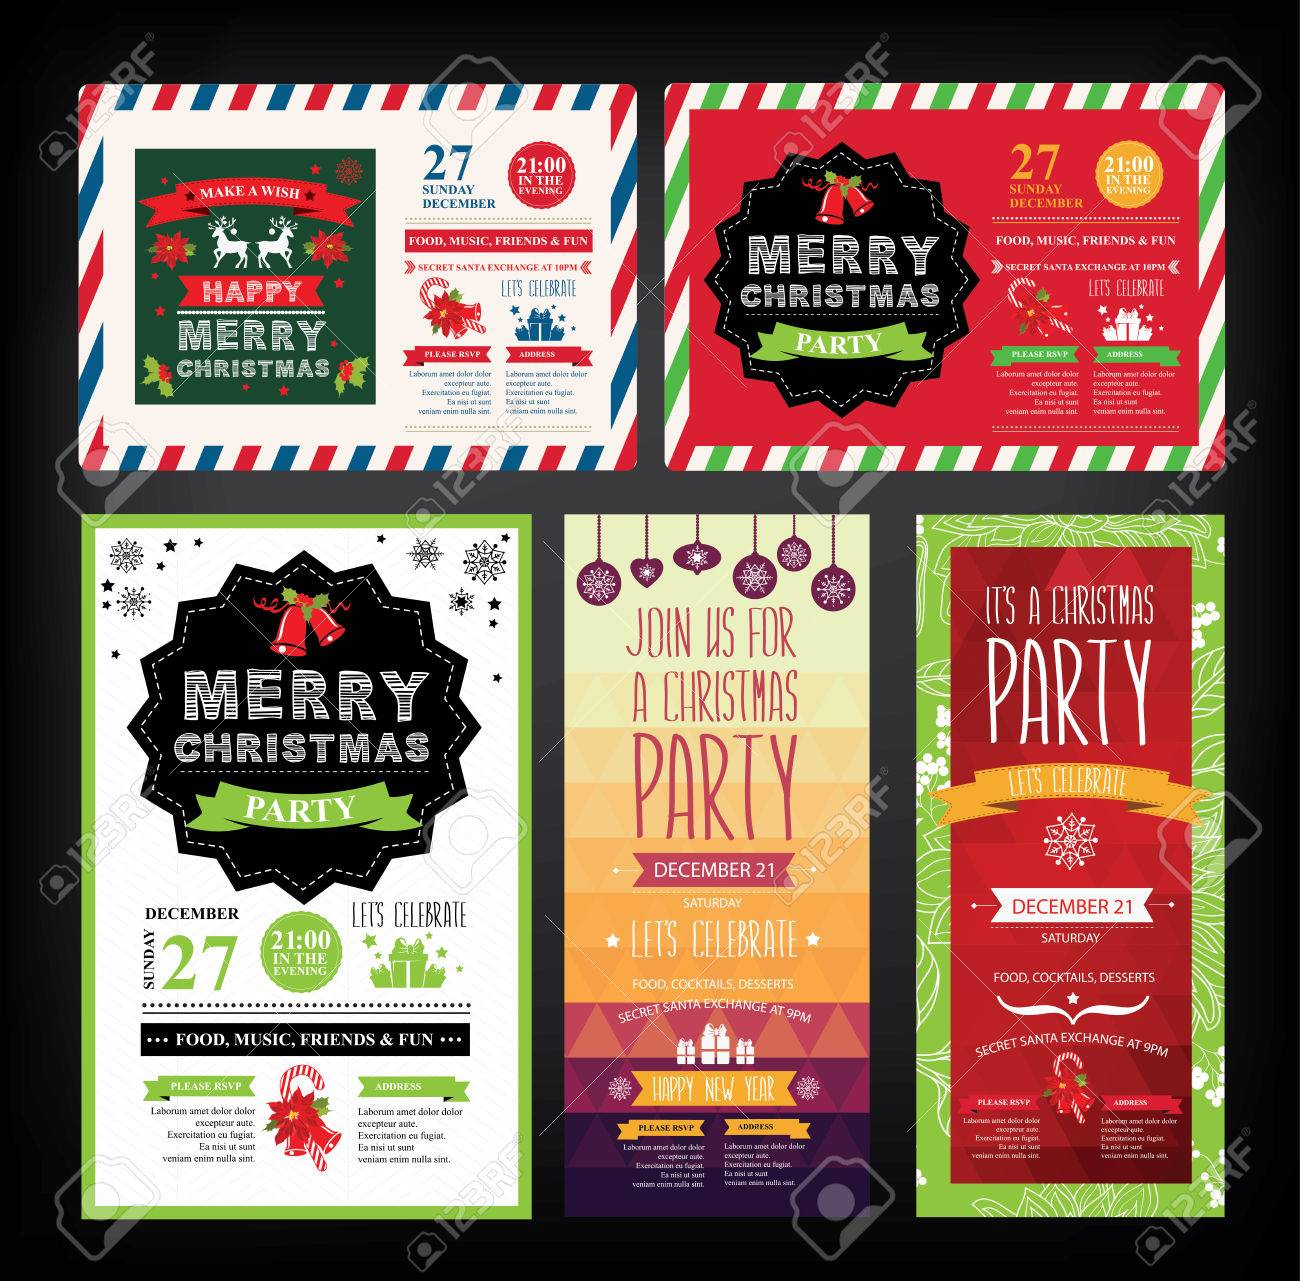 christmas party invitation holiday card vector template christmas party invitation holiday card vector template graphic stock vector 46040019